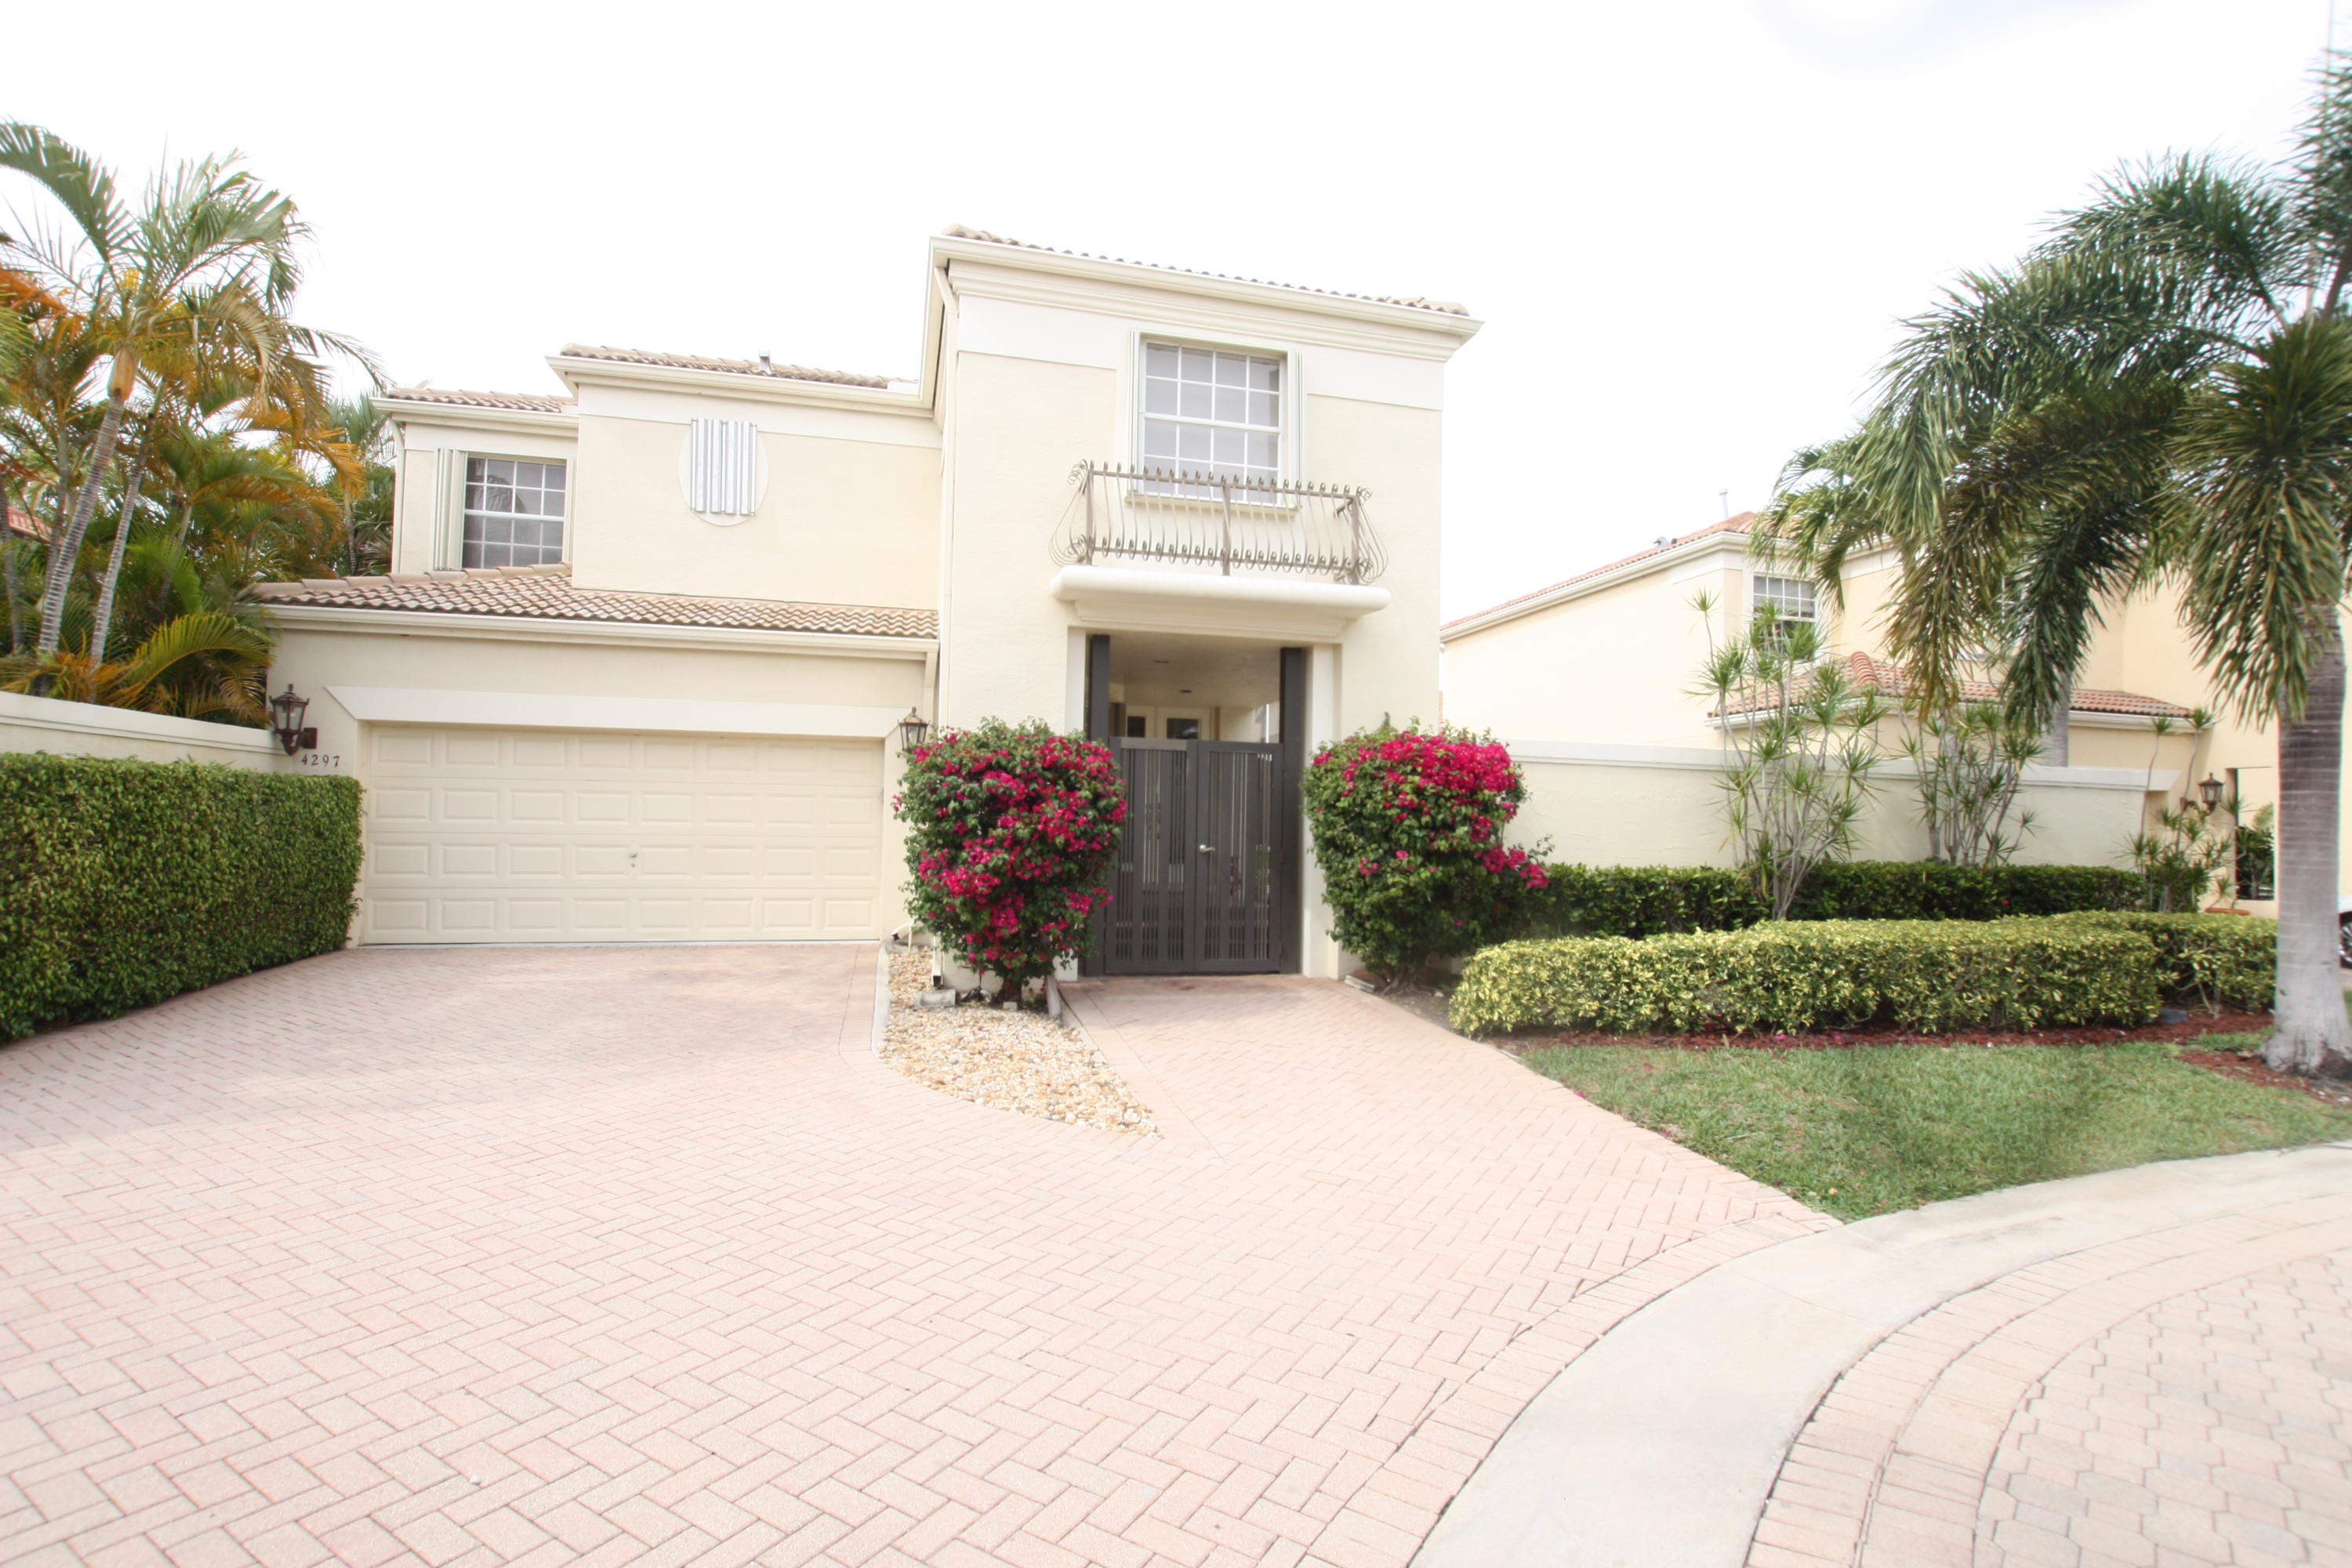 4297 63rd Place, Boca Raton, Florida 33496, 4 Bedrooms Bedrooms, ,2.1 BathroomsBathrooms,Single Family,For Sale,63rd,RX-10523495